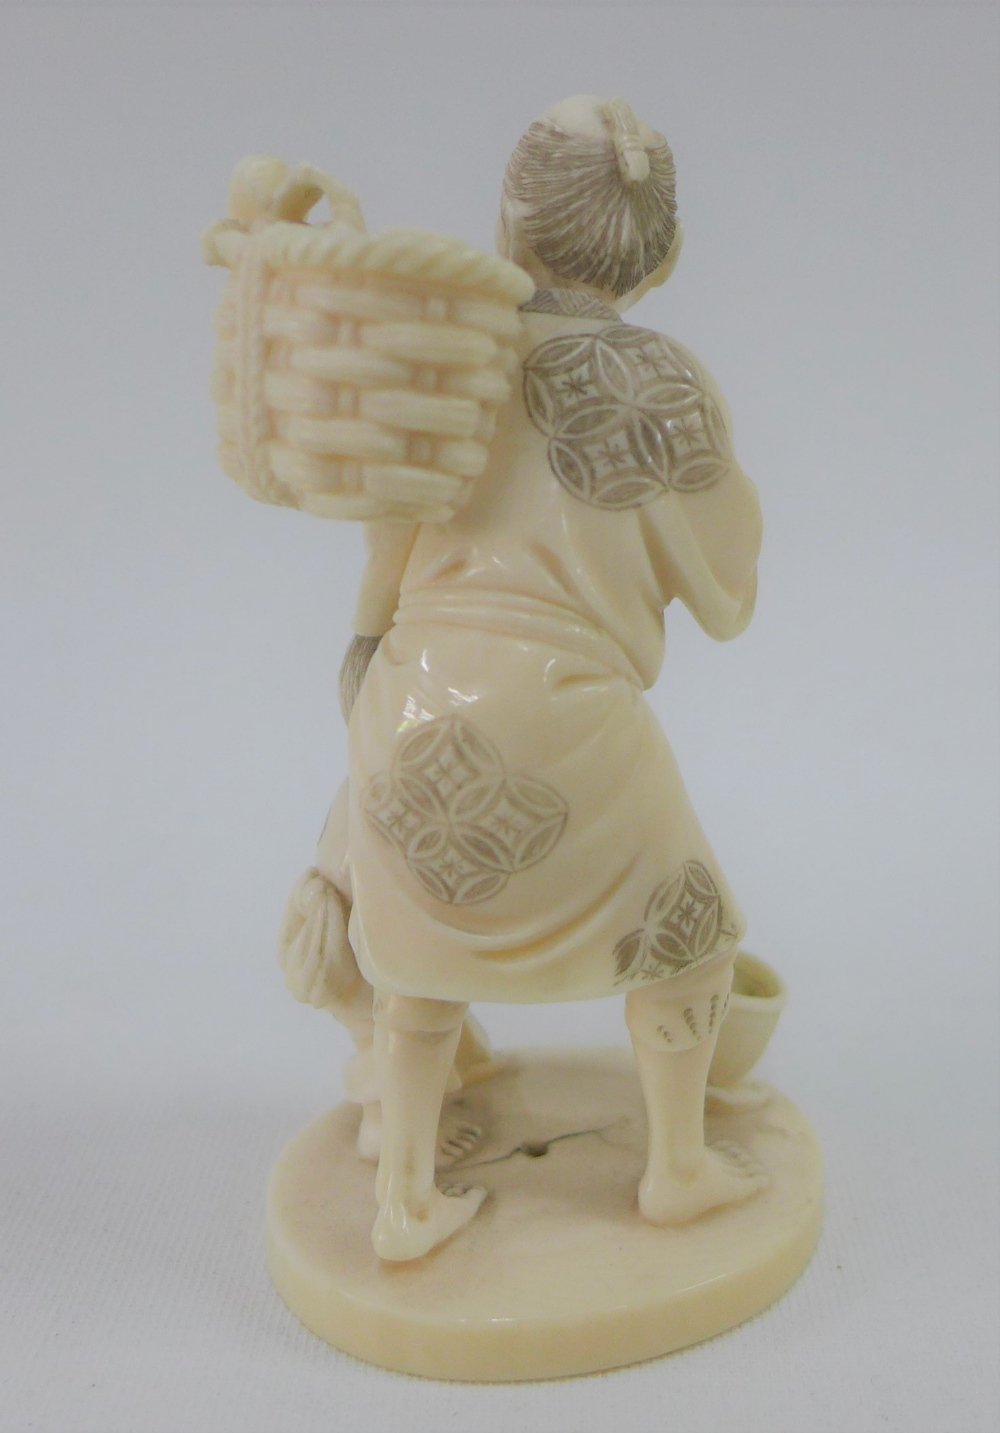 Lot 149 - Early 20th century Japanese ivory Okimono of a Fisherman, signed to the base, 9cm high